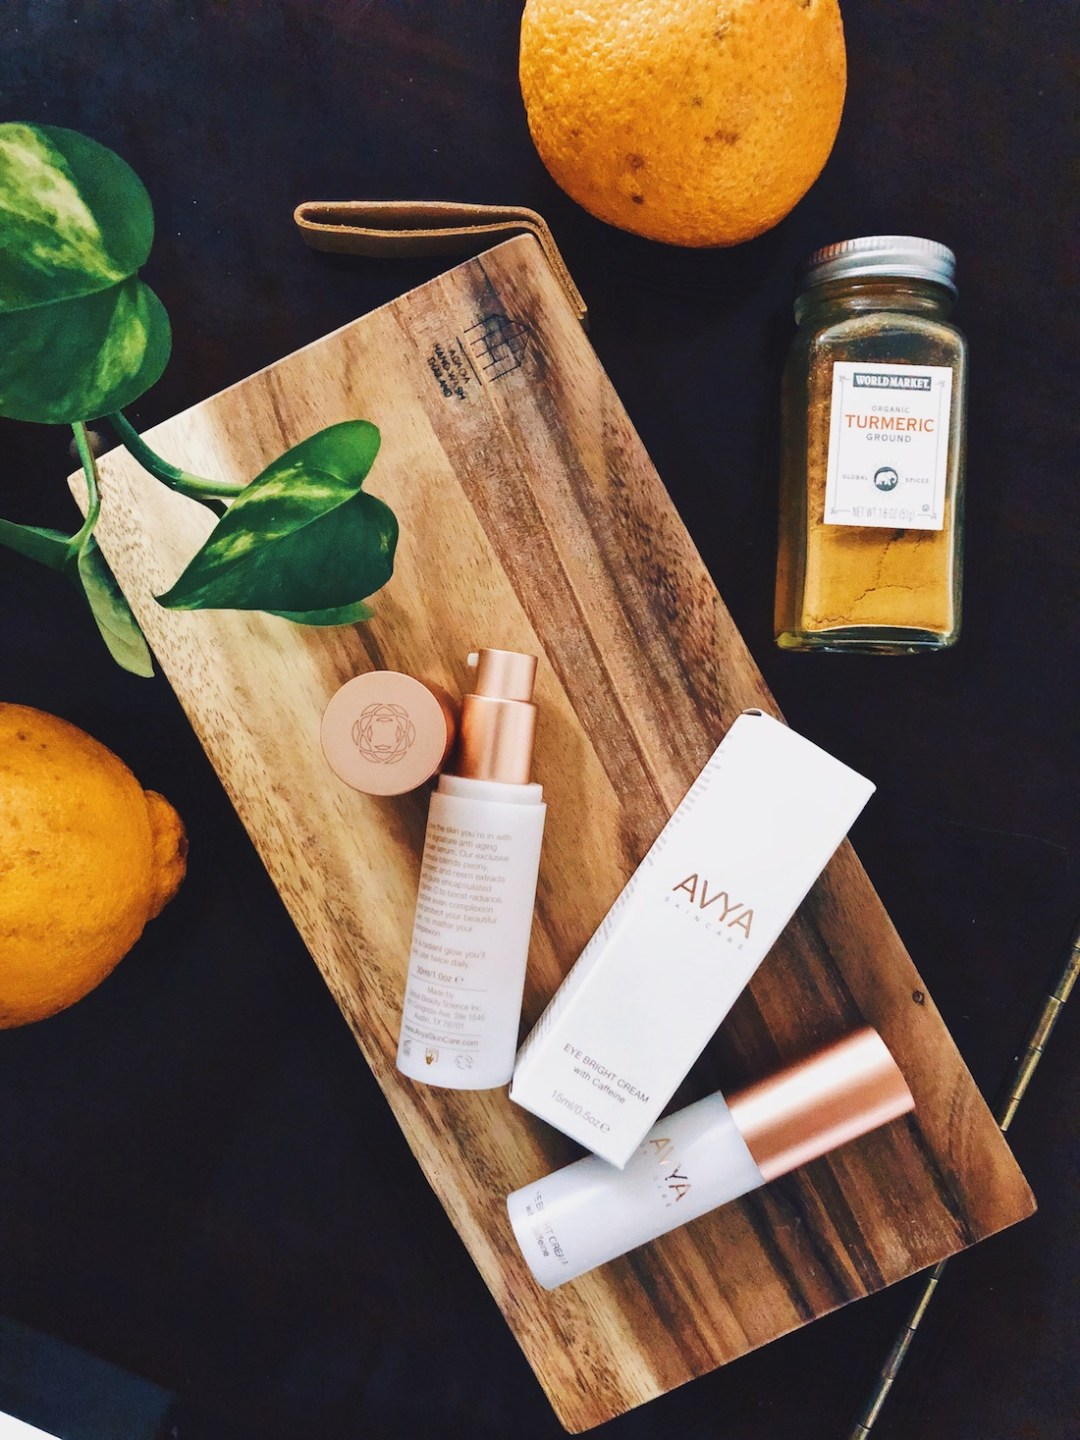 AVYA-Beauty-Review-Luxury-Anti-Aging-Skincare-Line-For-Every-Women-All-Skin-Tones-Allaboutgoovibes.com-IG-@Thevibescloset